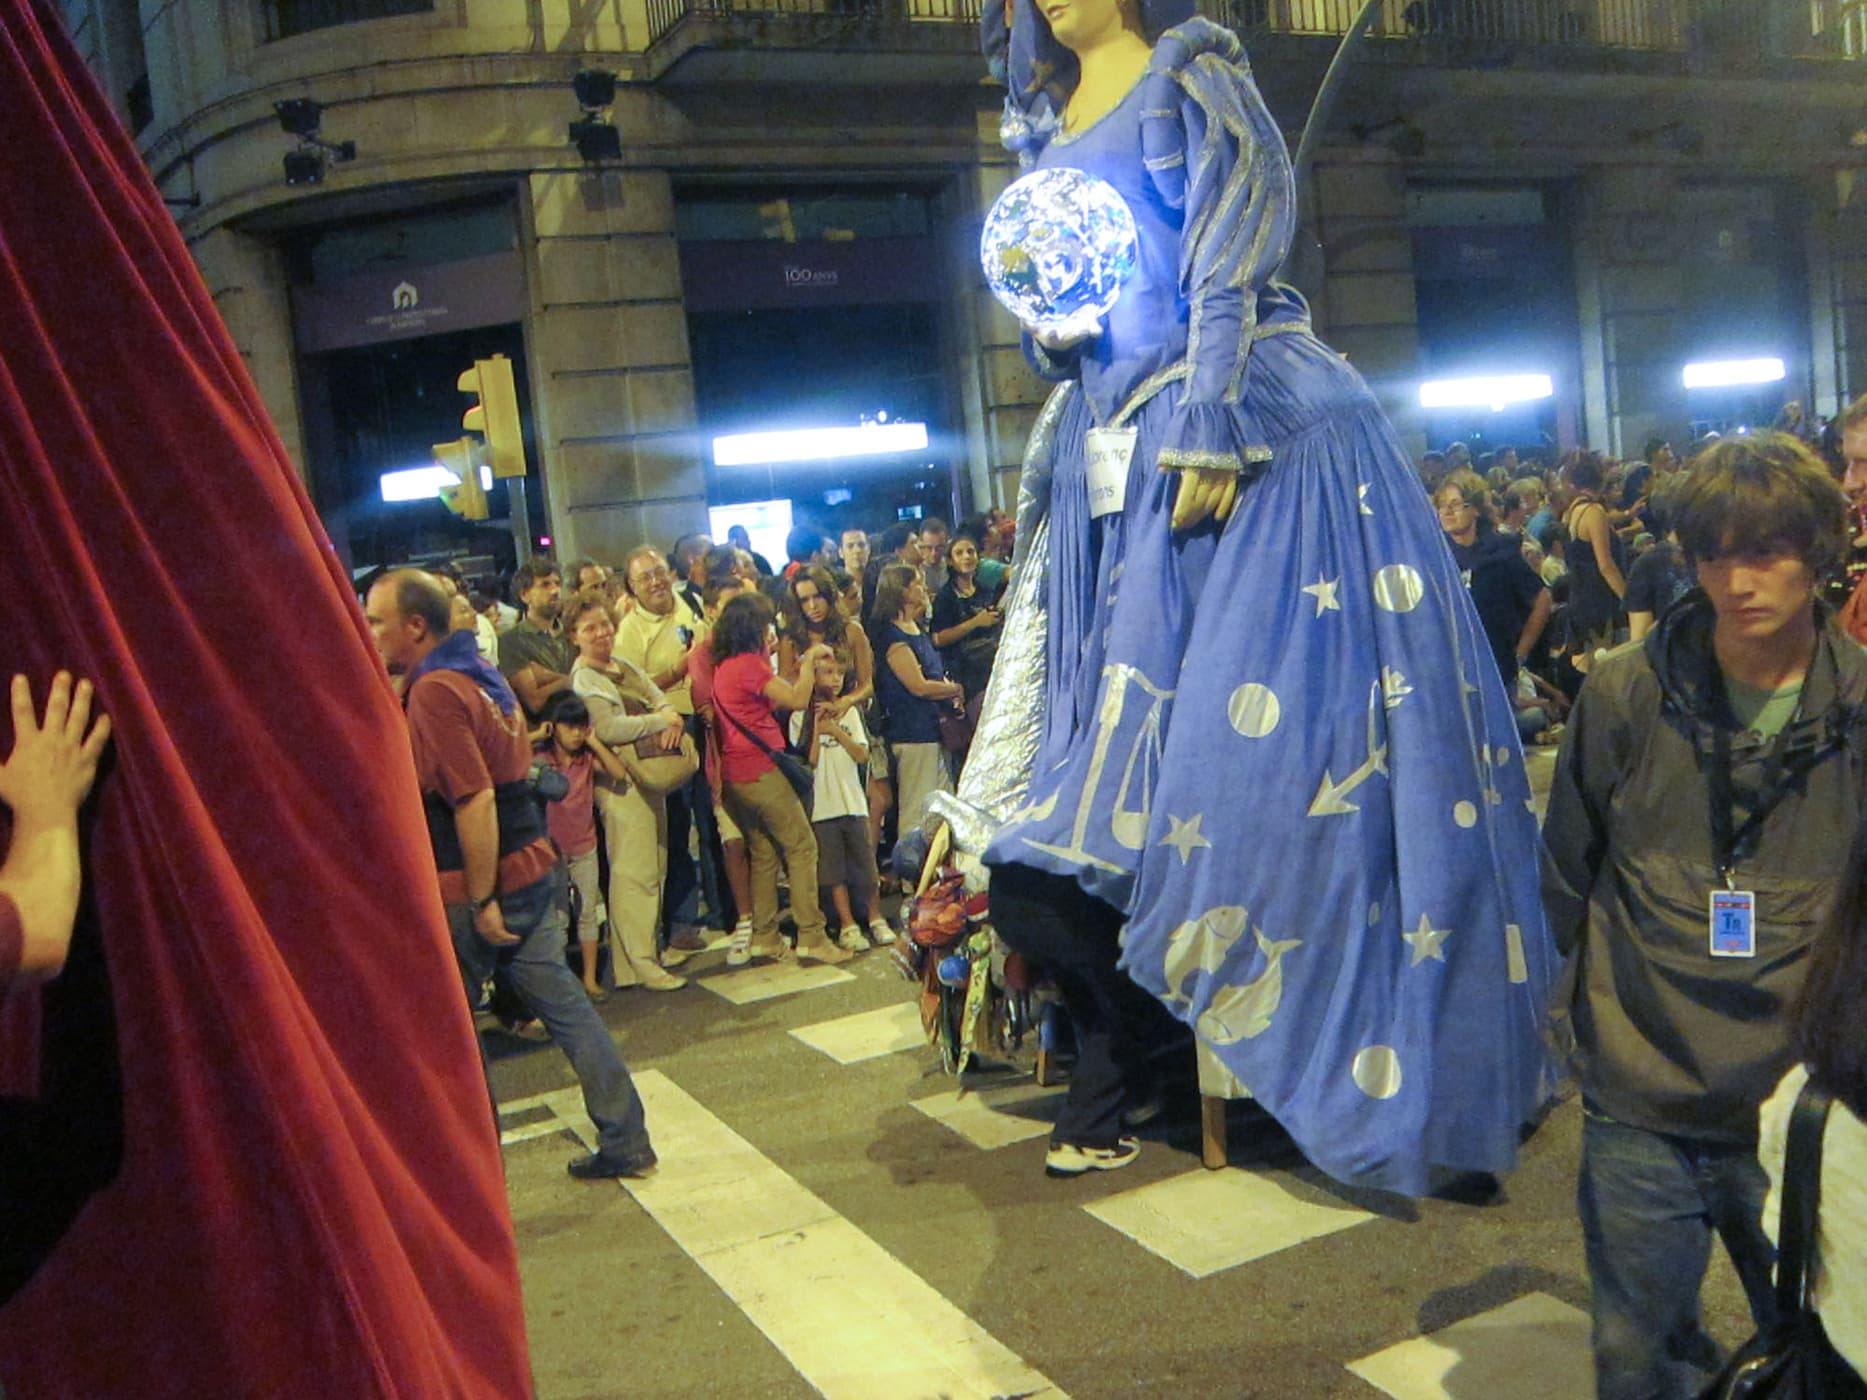 Gegants parade at La Mercè Festival in Barcelona, Spain